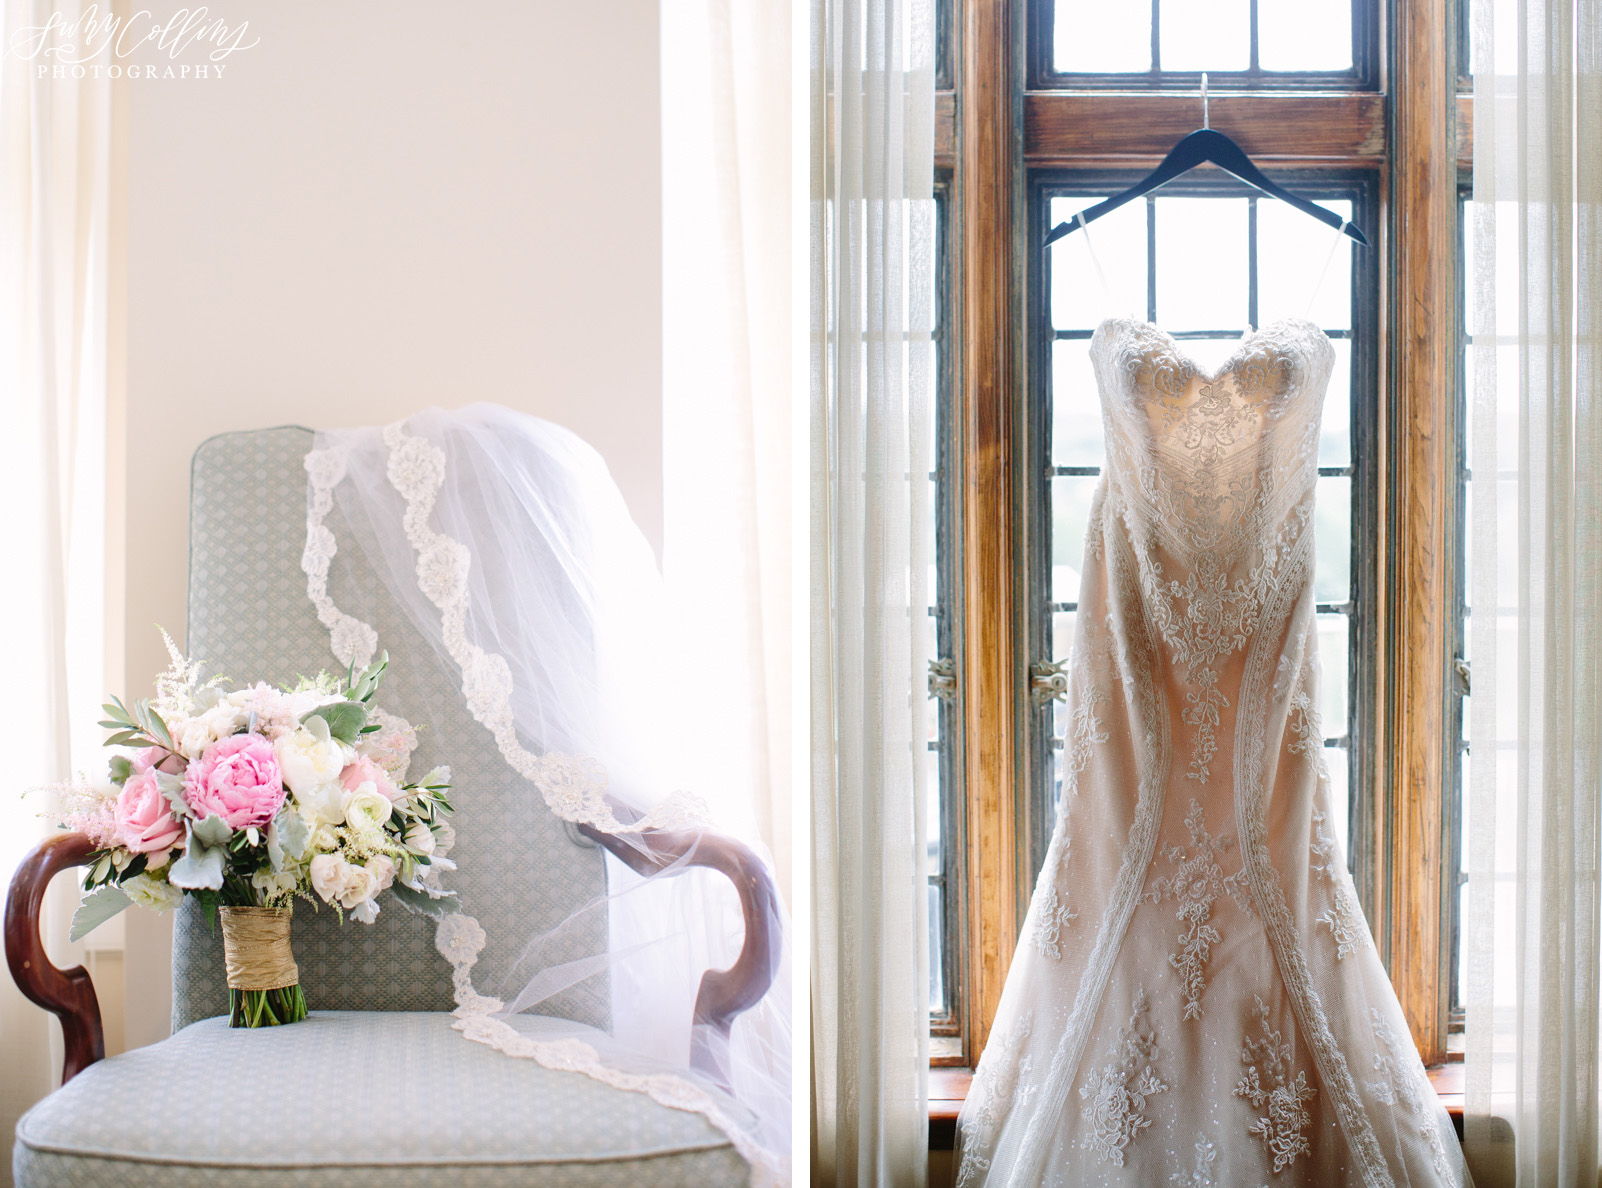 poses, indoor, romantic, spring, light and airy, natural light, ideas, passion, artistic, creative, inspiration, editorial, art, lighting, love, Knoxville, Tennessee, Cherokee country club, vibrant, colorful, bright, veil, flowers, dress, getting ready, details